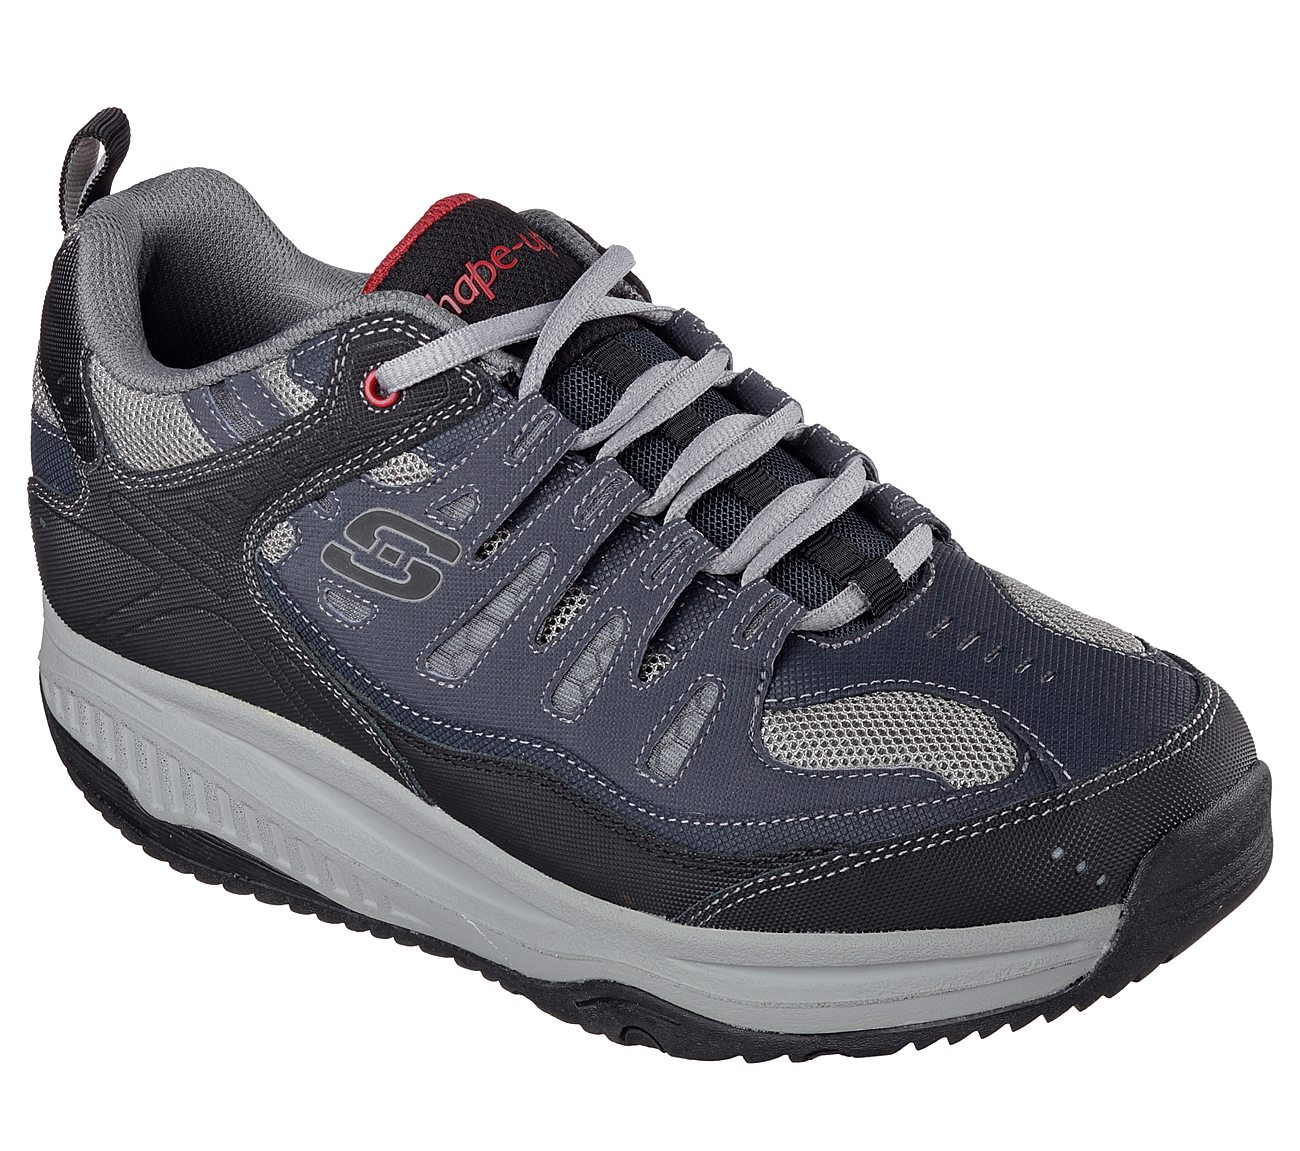 Buy SKECHERS Shape ups 2.0 Everyday